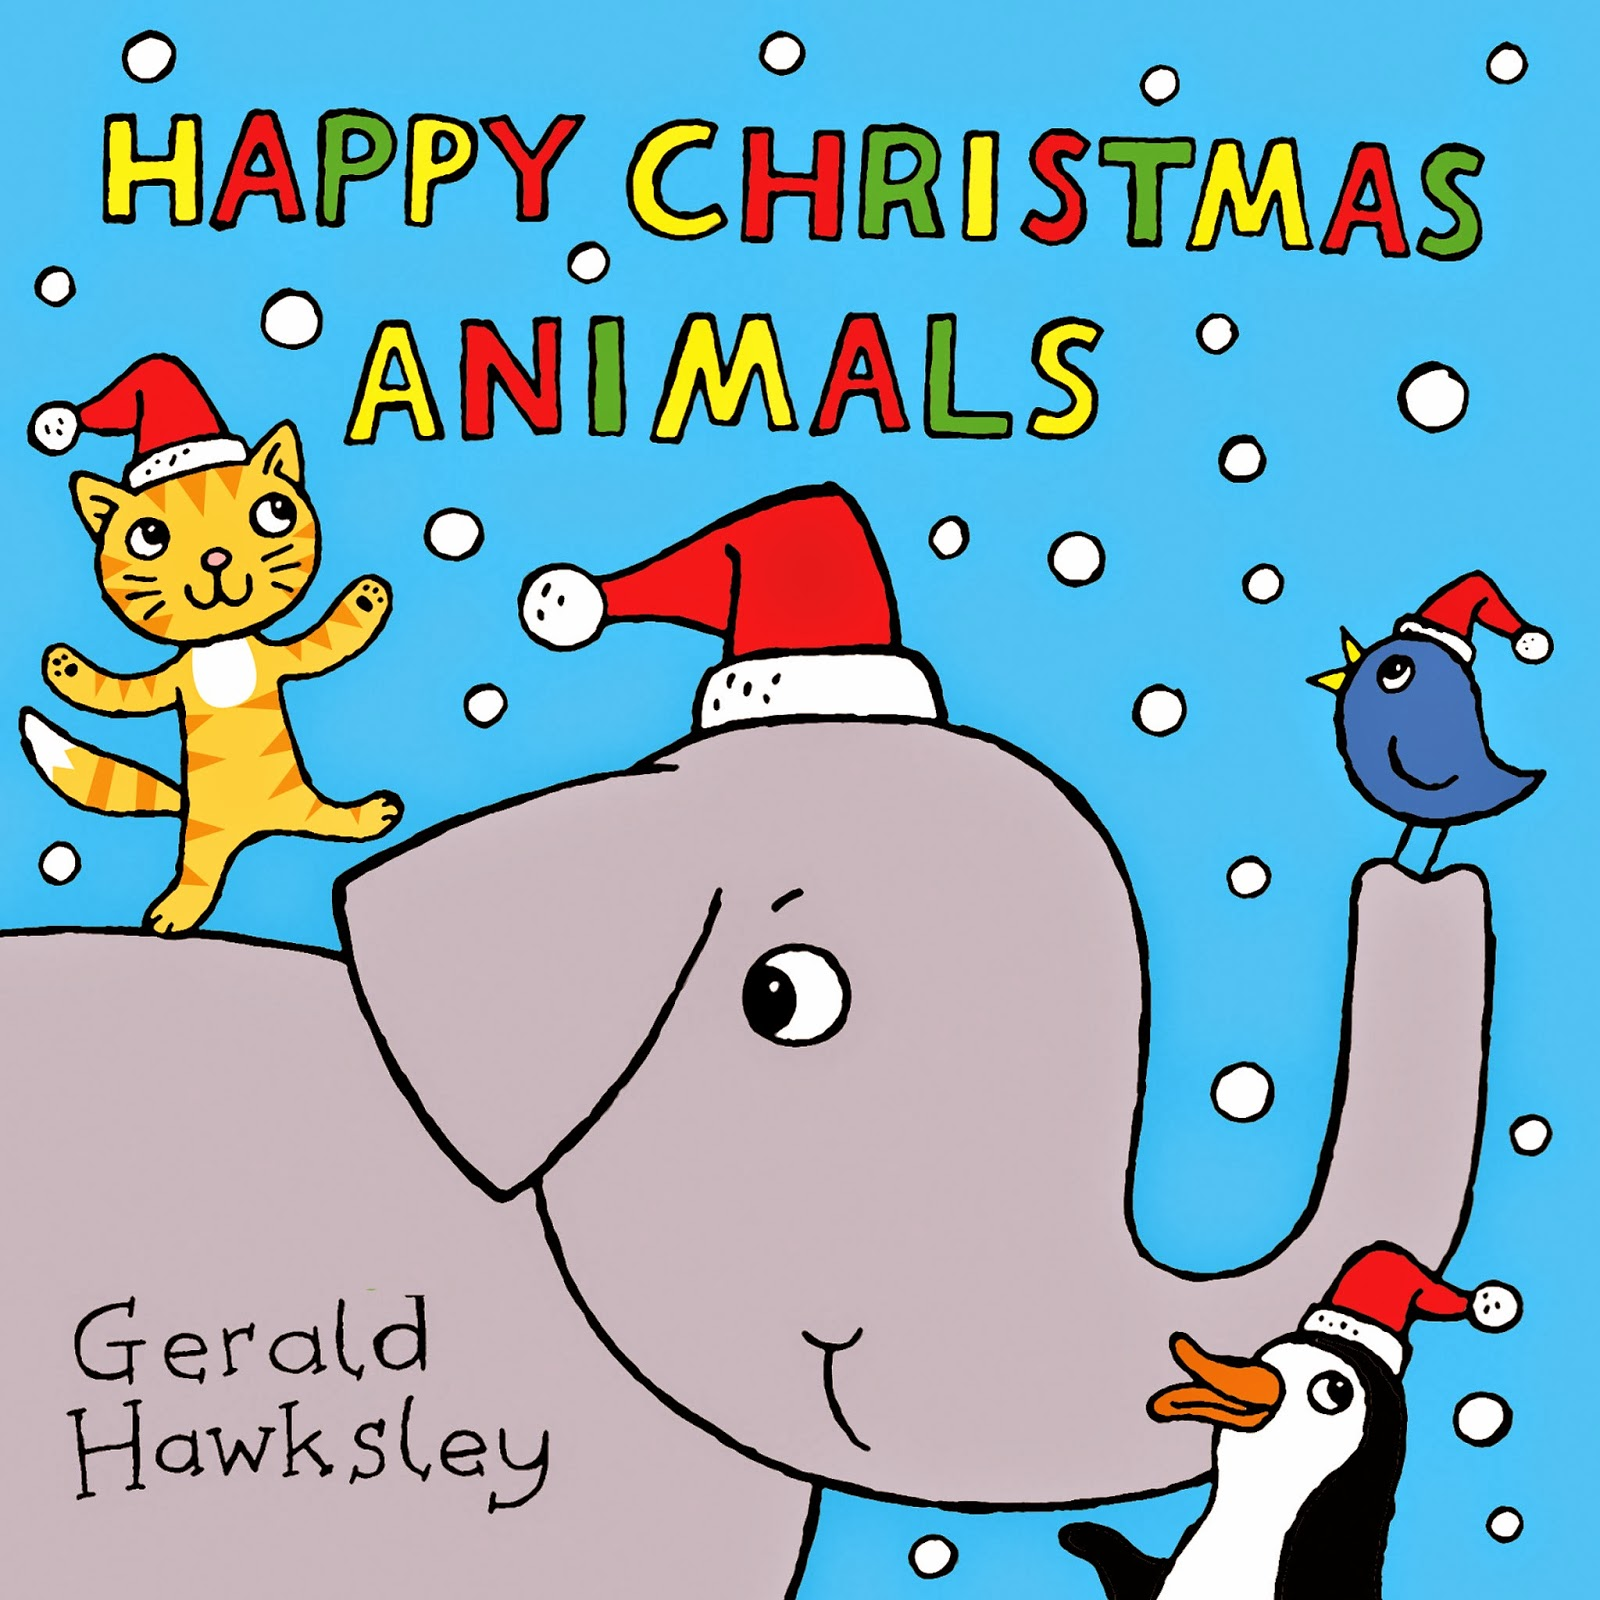 cover image for happy christmas animals kindle ebook